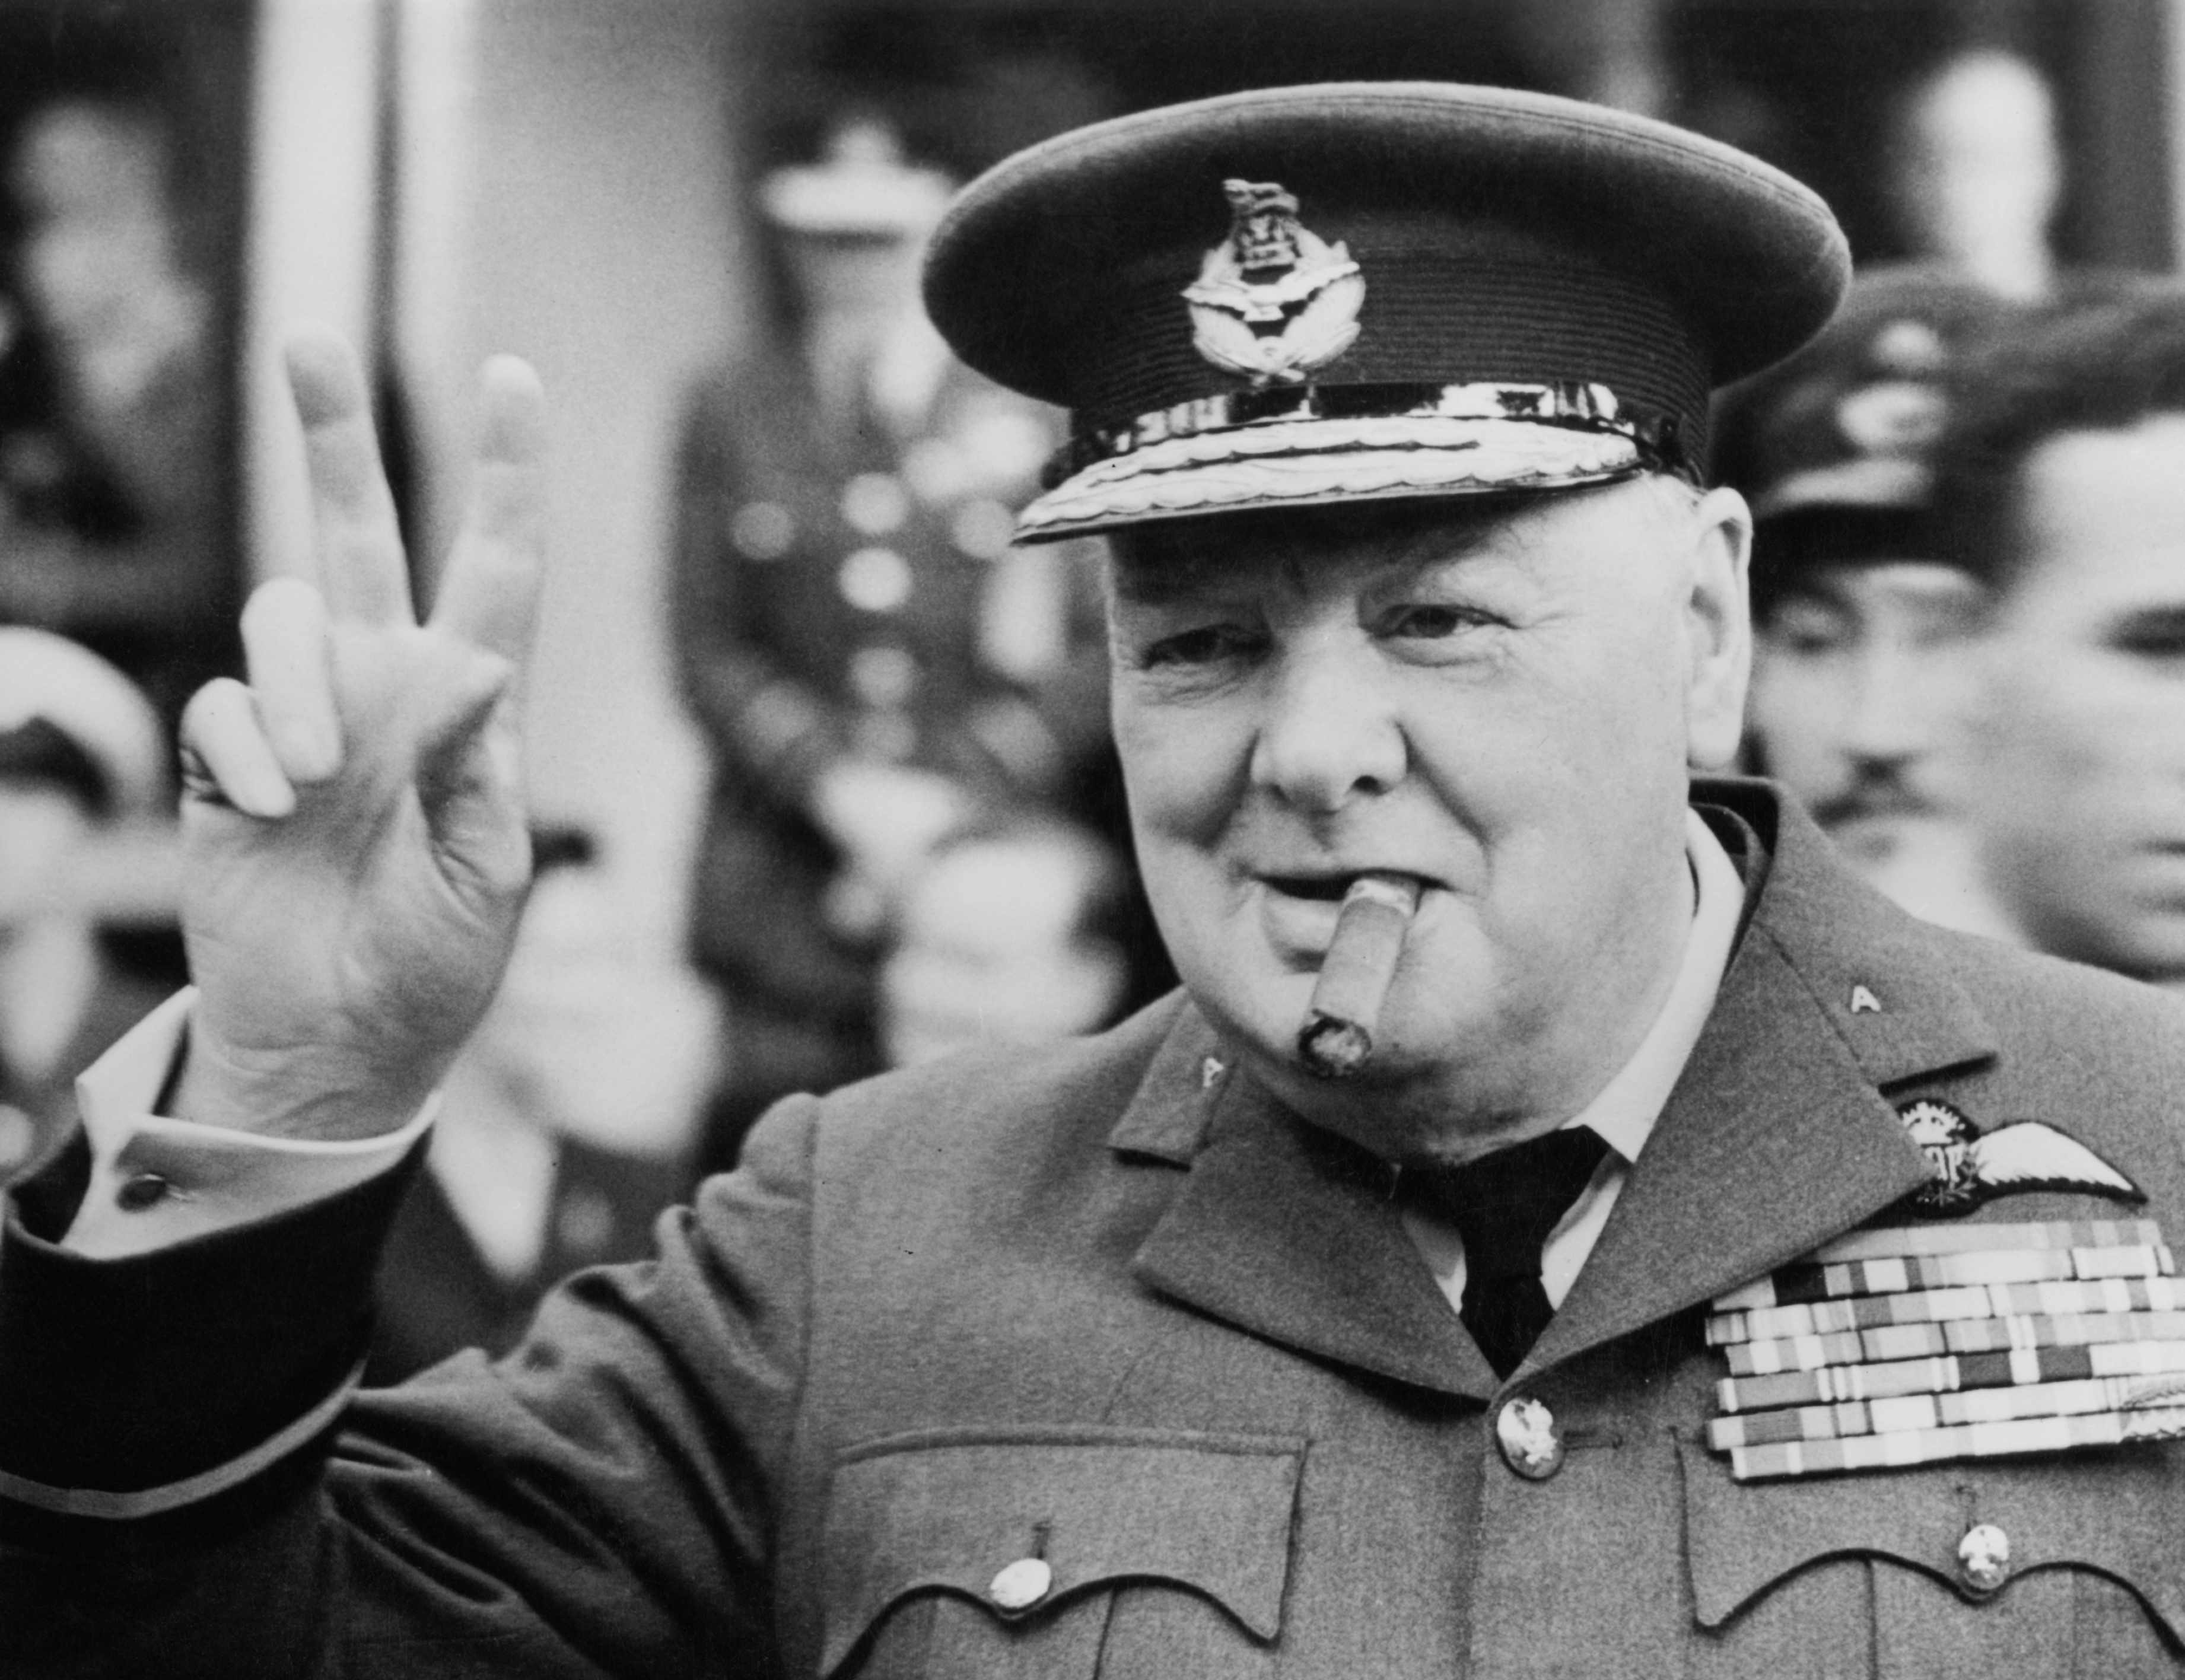 Winston Churchill gives his famous v-sign as he opens the new headquarters of 615 (County of Surrey) Squadron of the RAAF (Royal Auxiliary Air Force) at Croydon, 1948. (Photo by Central Press/Hulton Archive/Getty Images)